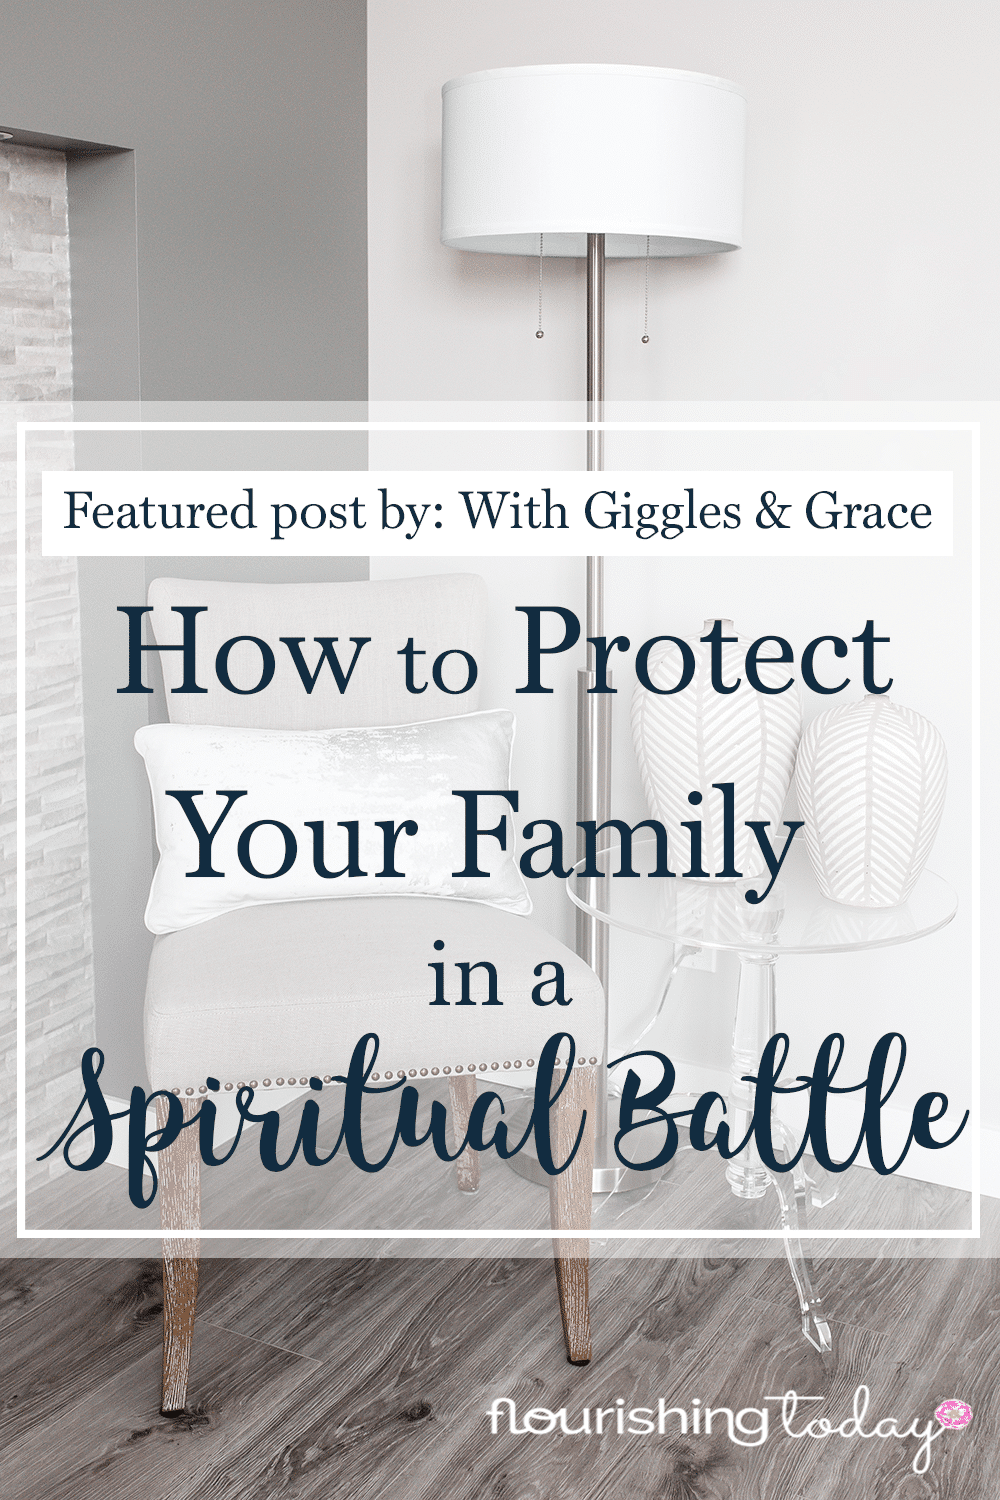 How do you protect your family in a Spiritual Battle? Here are a few ways to fight for your family when you feel attacked by the enemy.